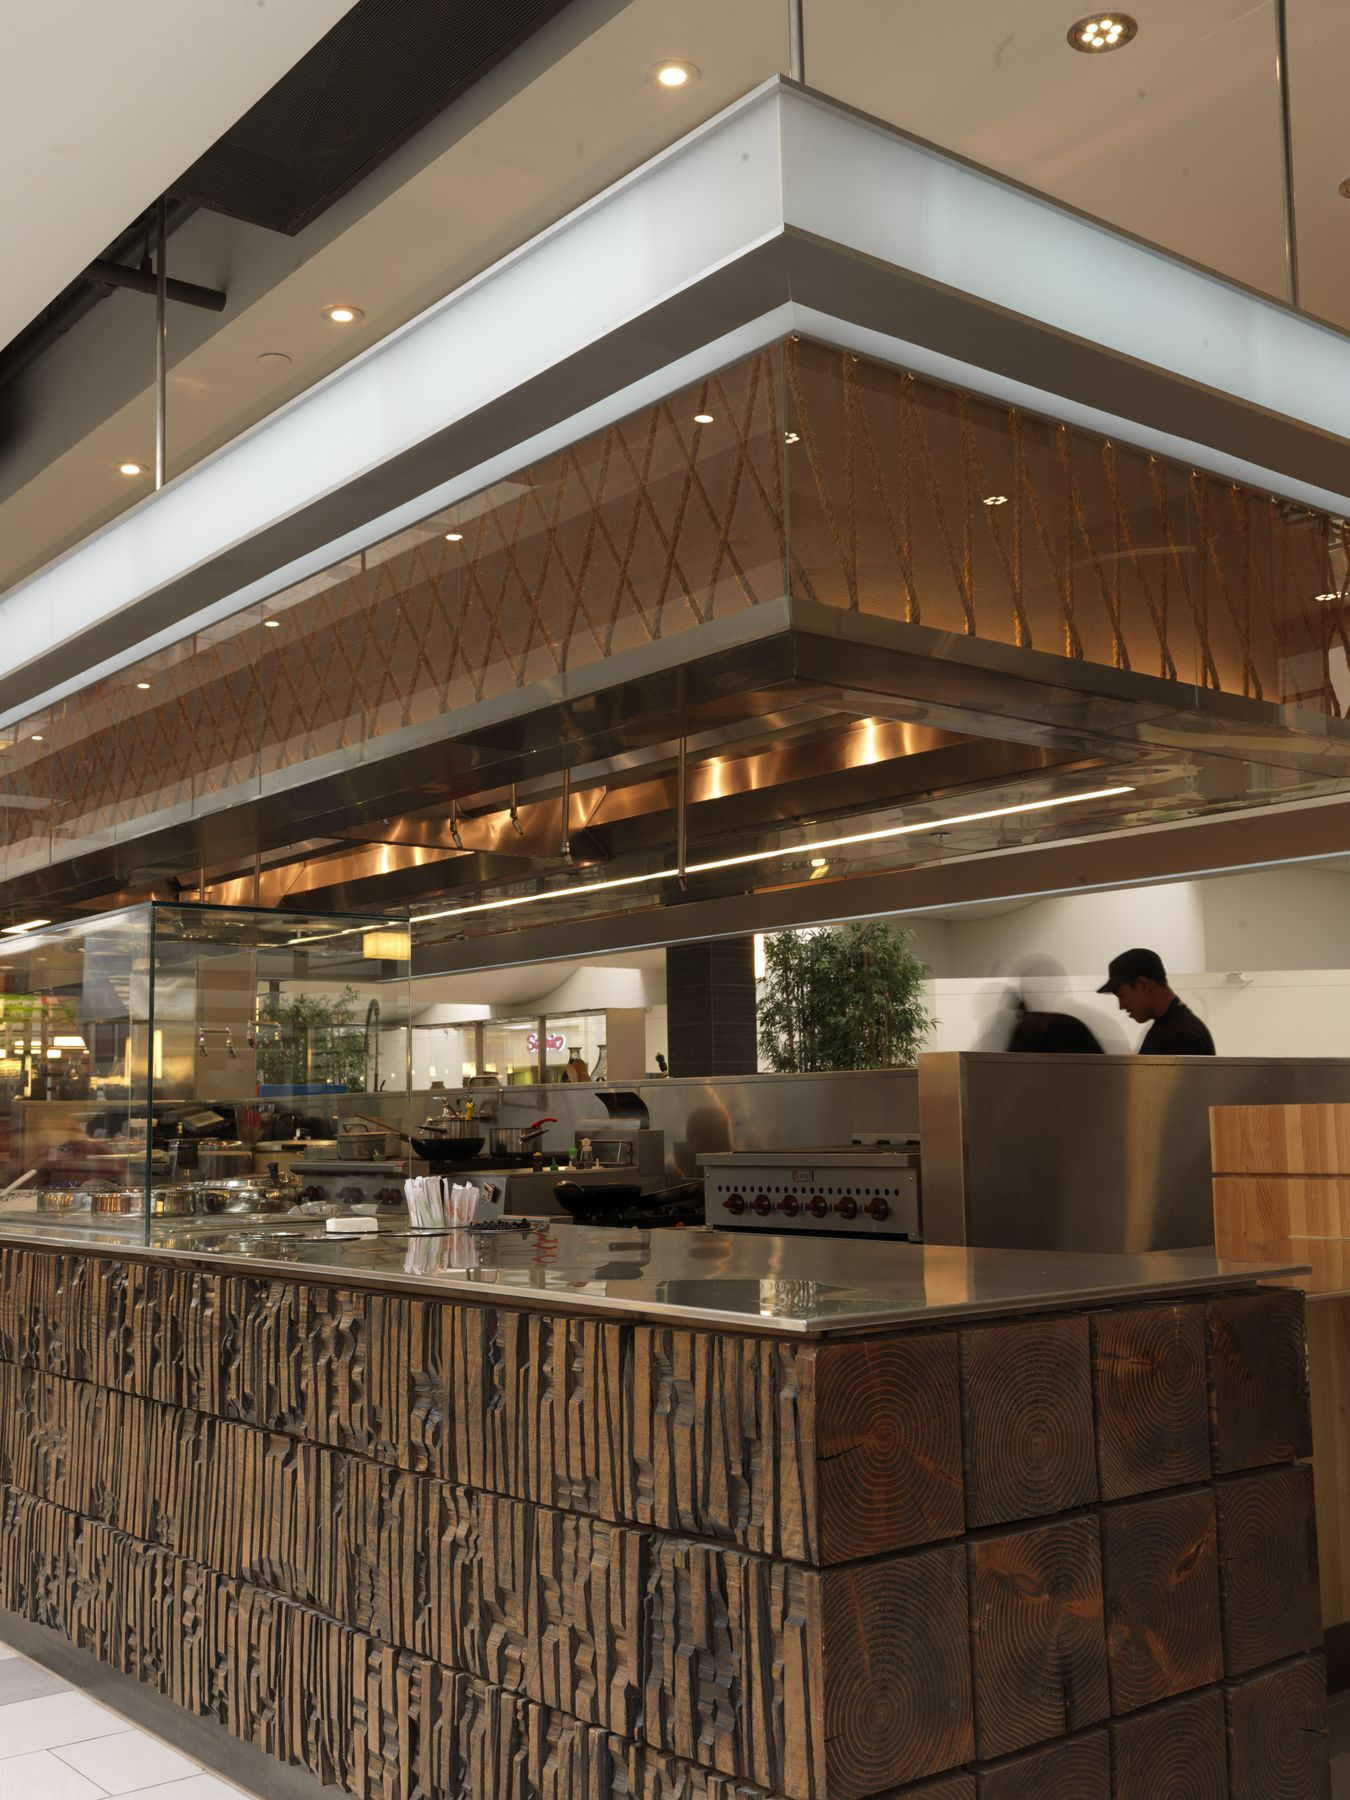 viet gourmet noodle designed by tag front all day dining in 2019 rh pinterest com